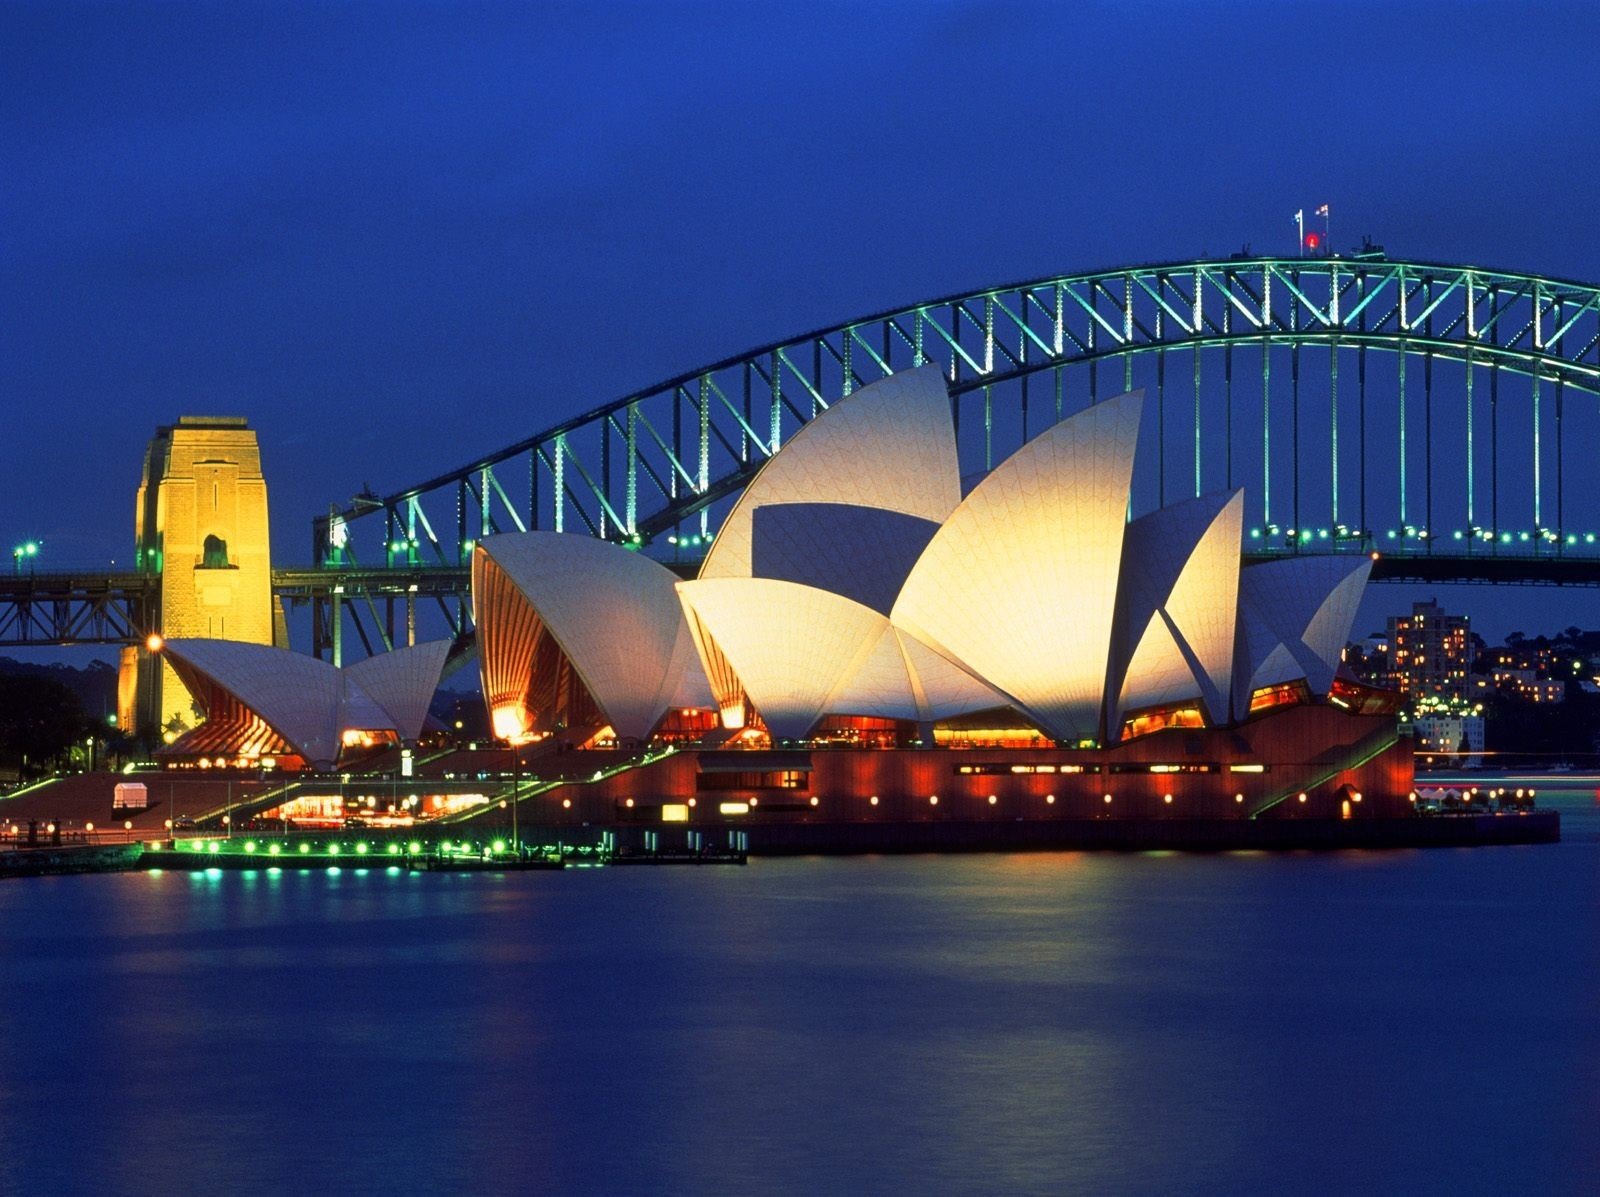 cityscapes Sydney auditorium HD Wallpaper